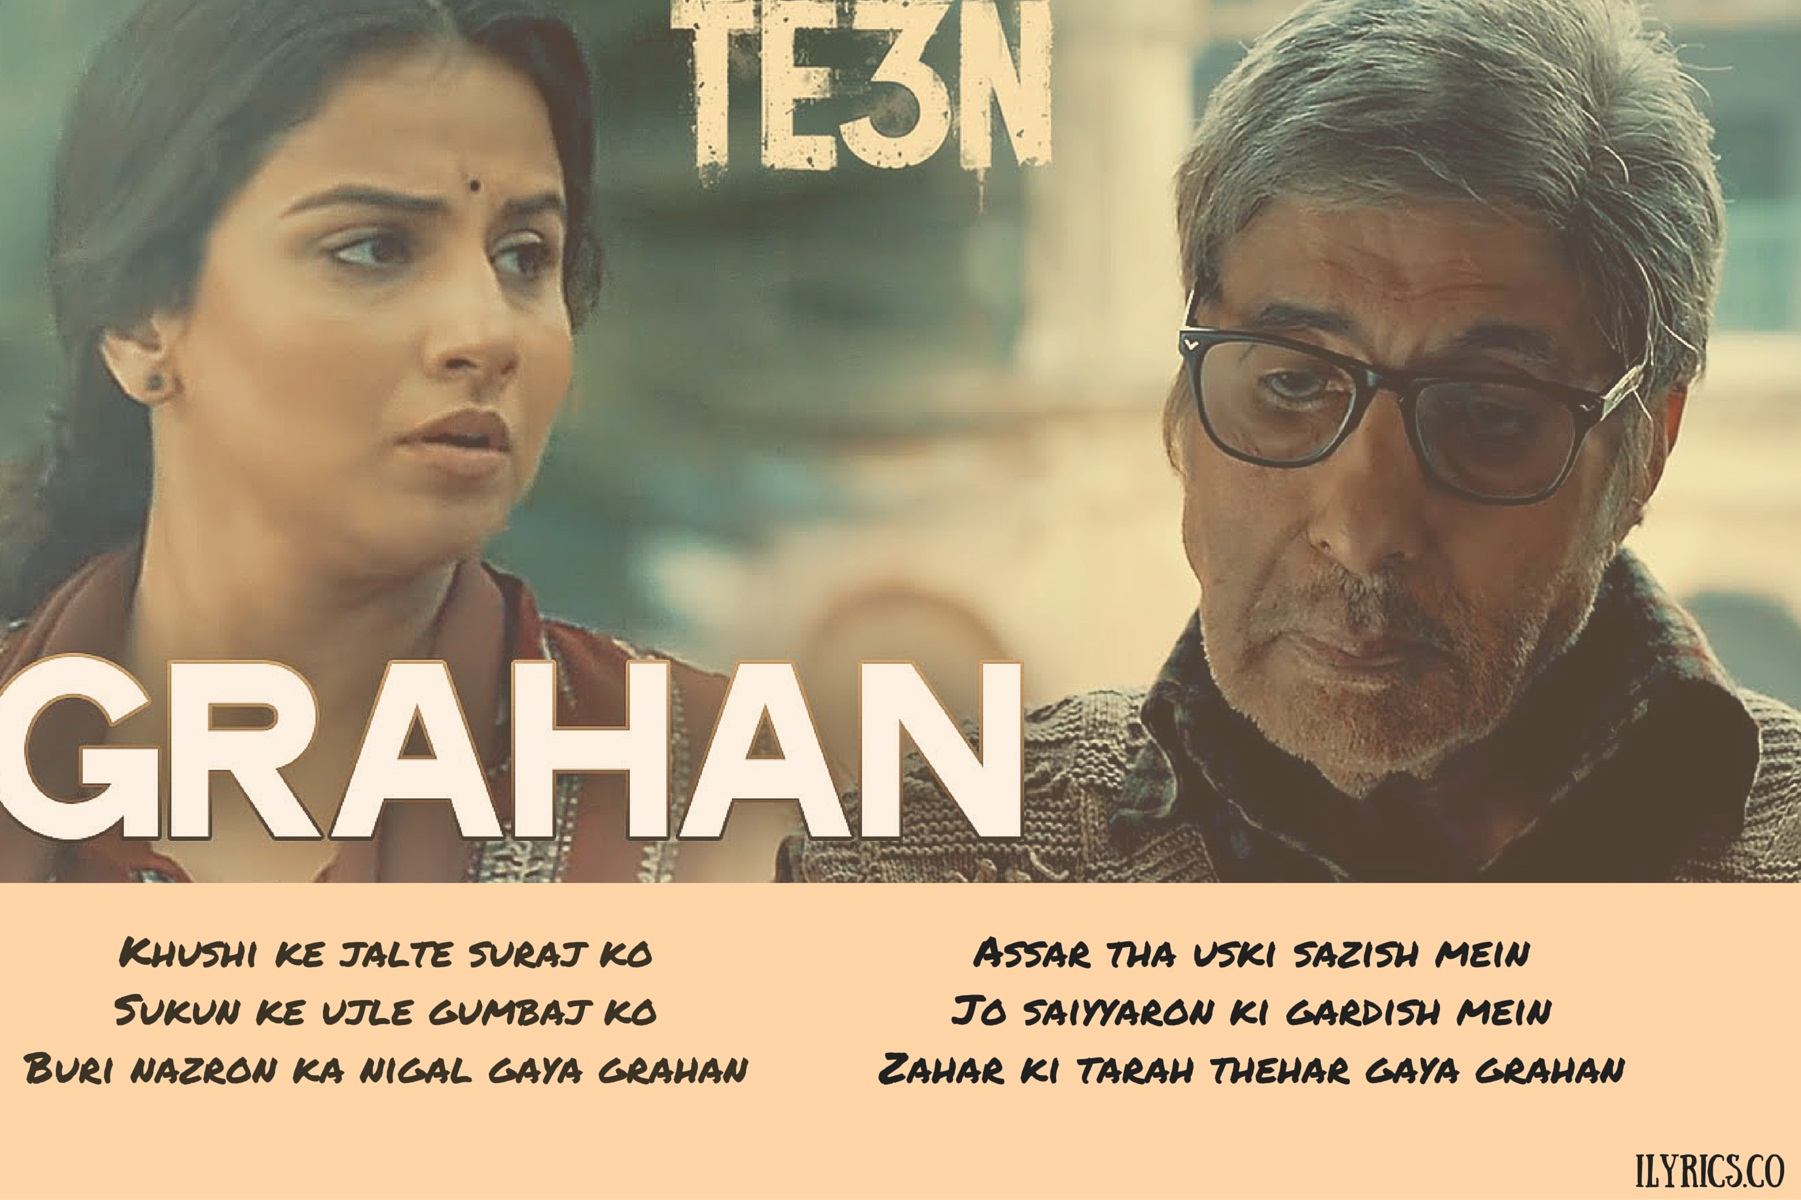 Grahan Lyrics